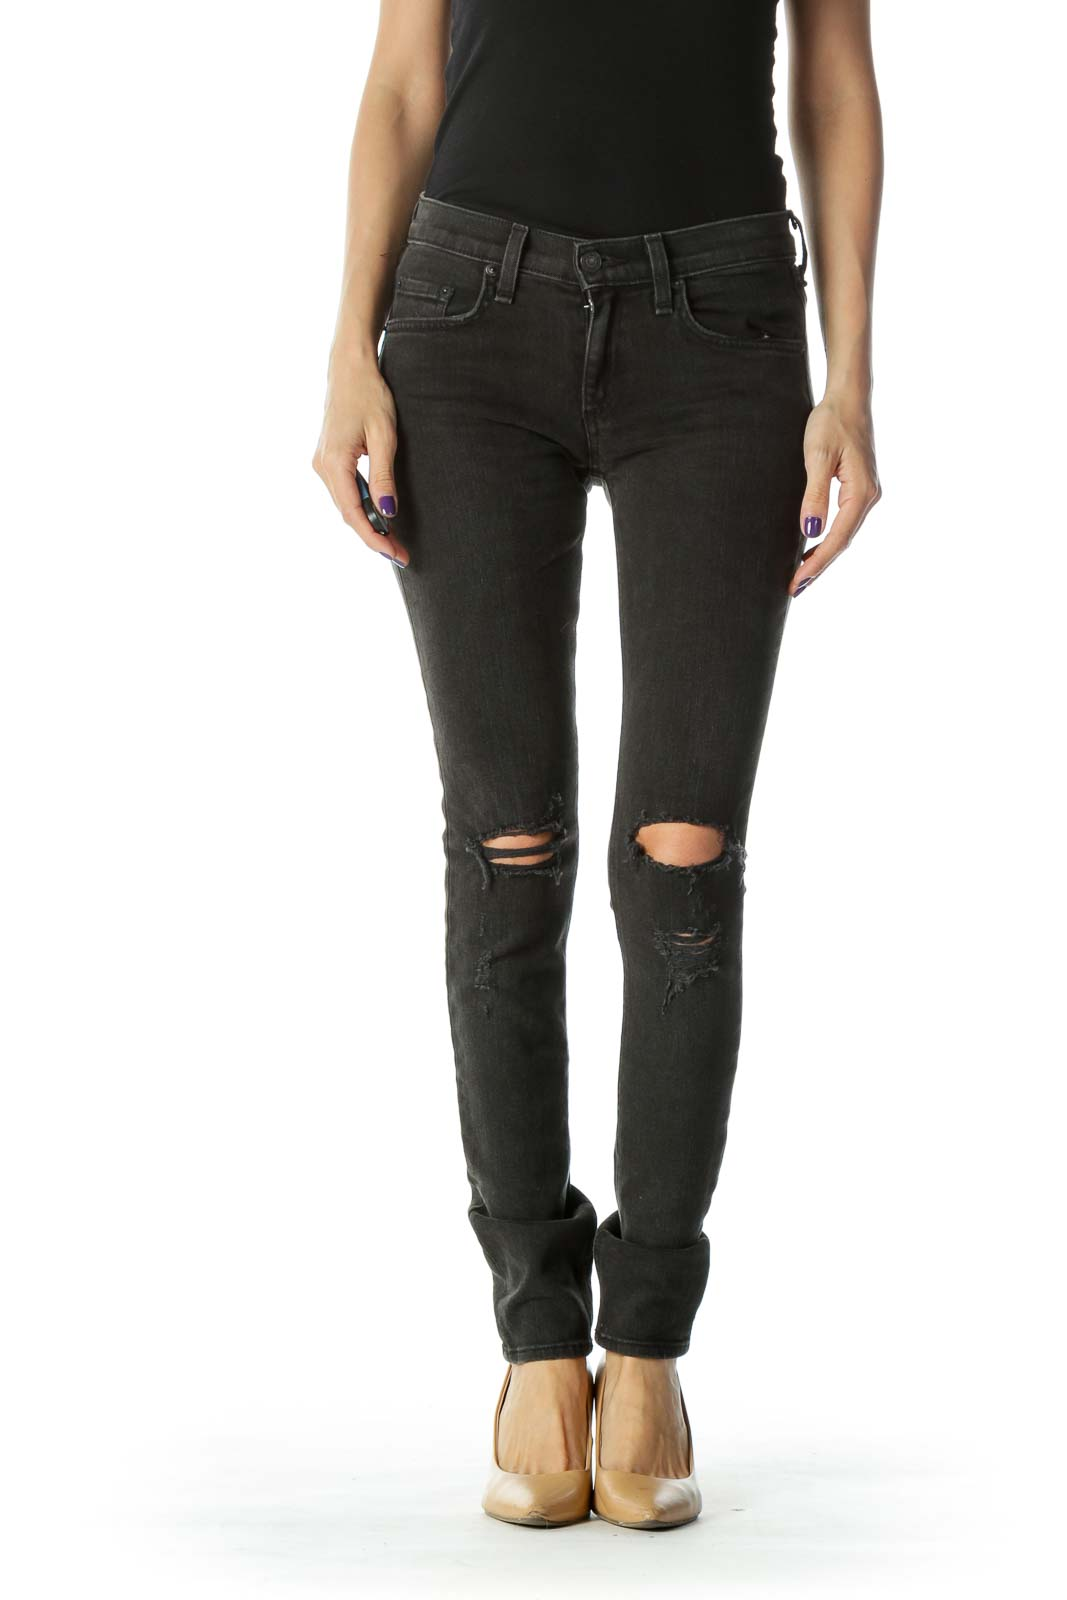 Black Faded Distressed Skinny Jean